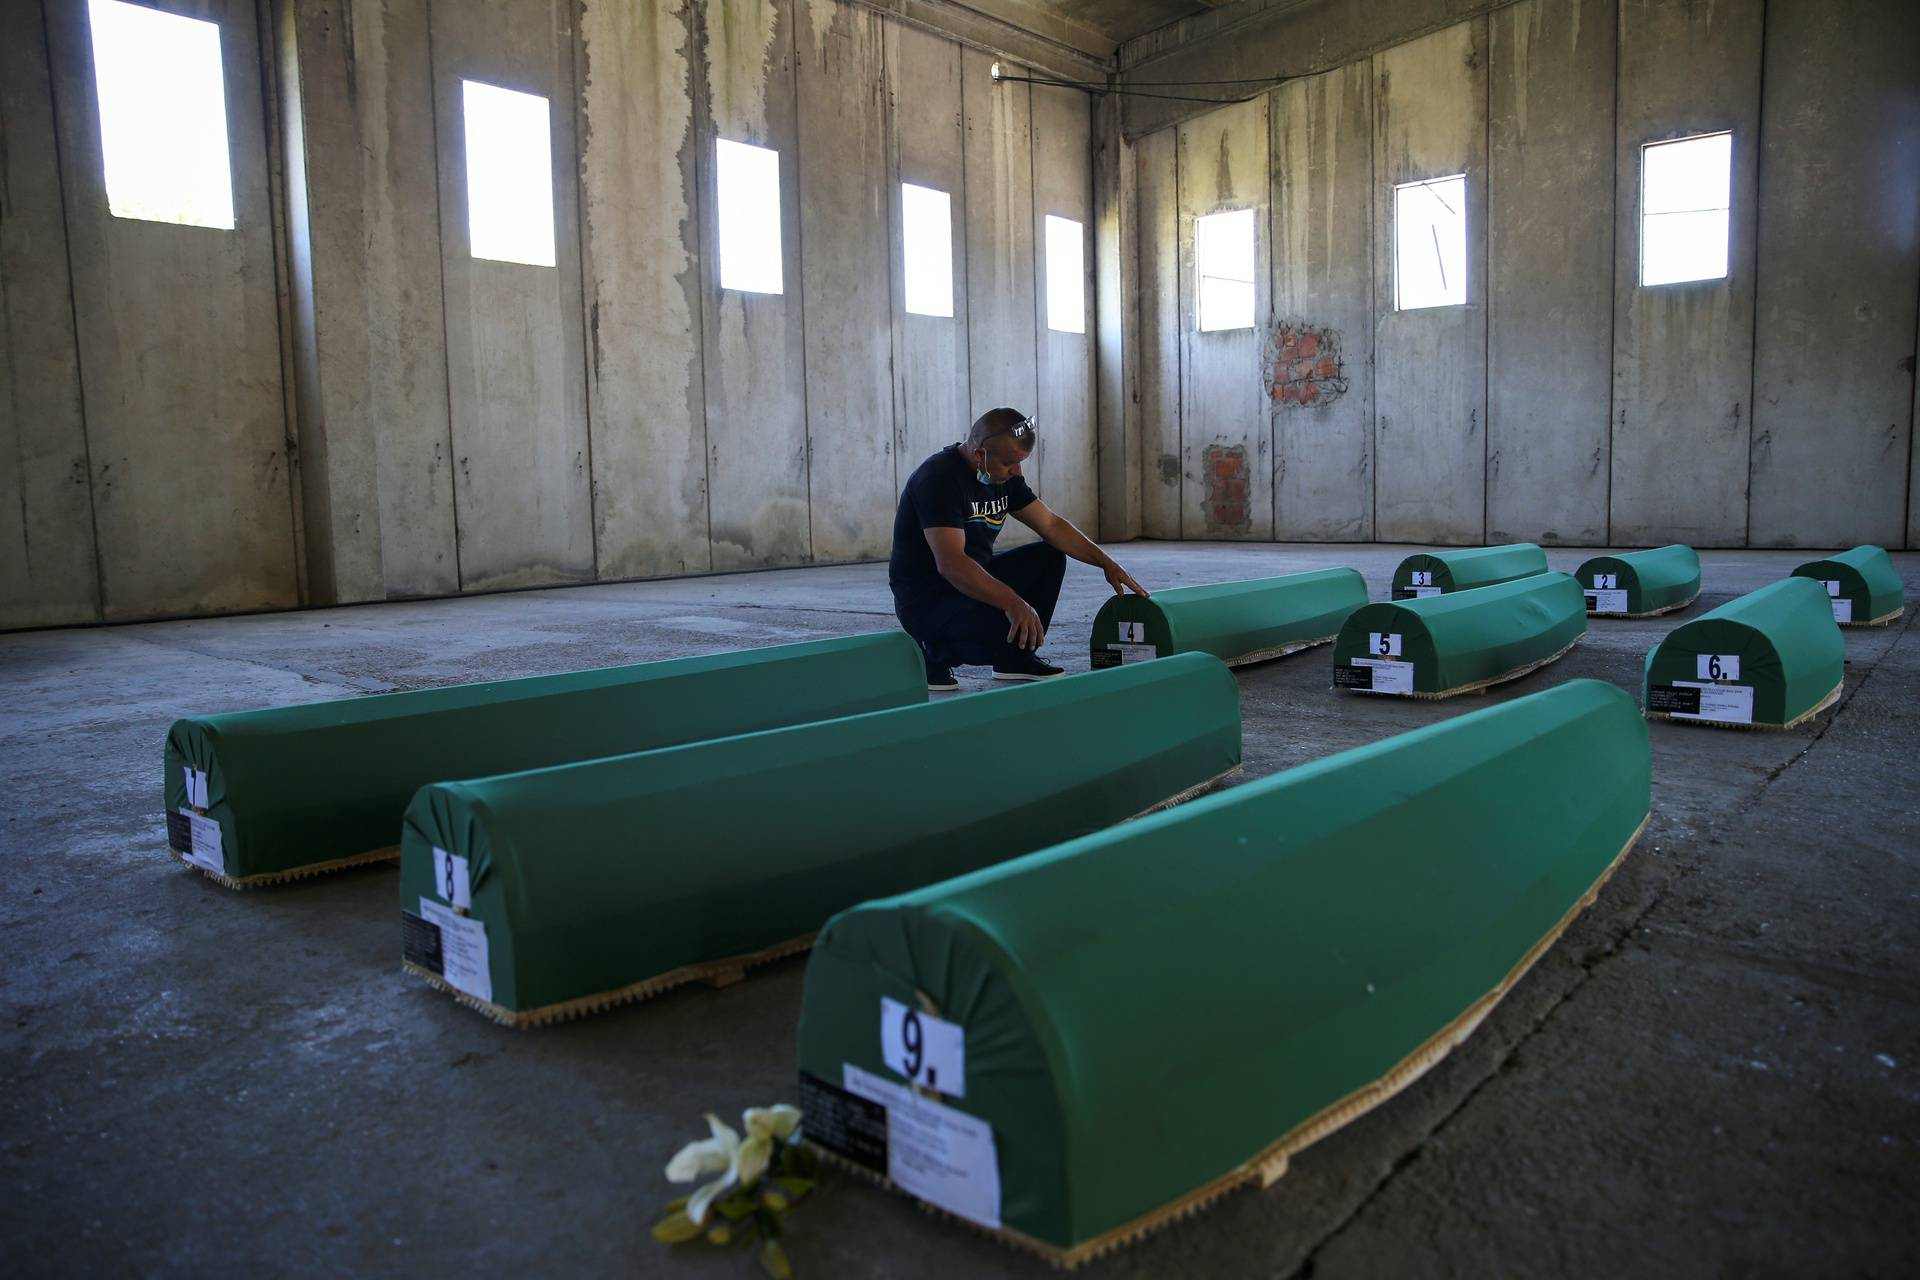 Bahrudin Salkovic, who lost his father, reacts next to the coffins with remains of newly identified victims at Potocari-Srebrenica Memorial ahead of burial on July 11, in Potocari